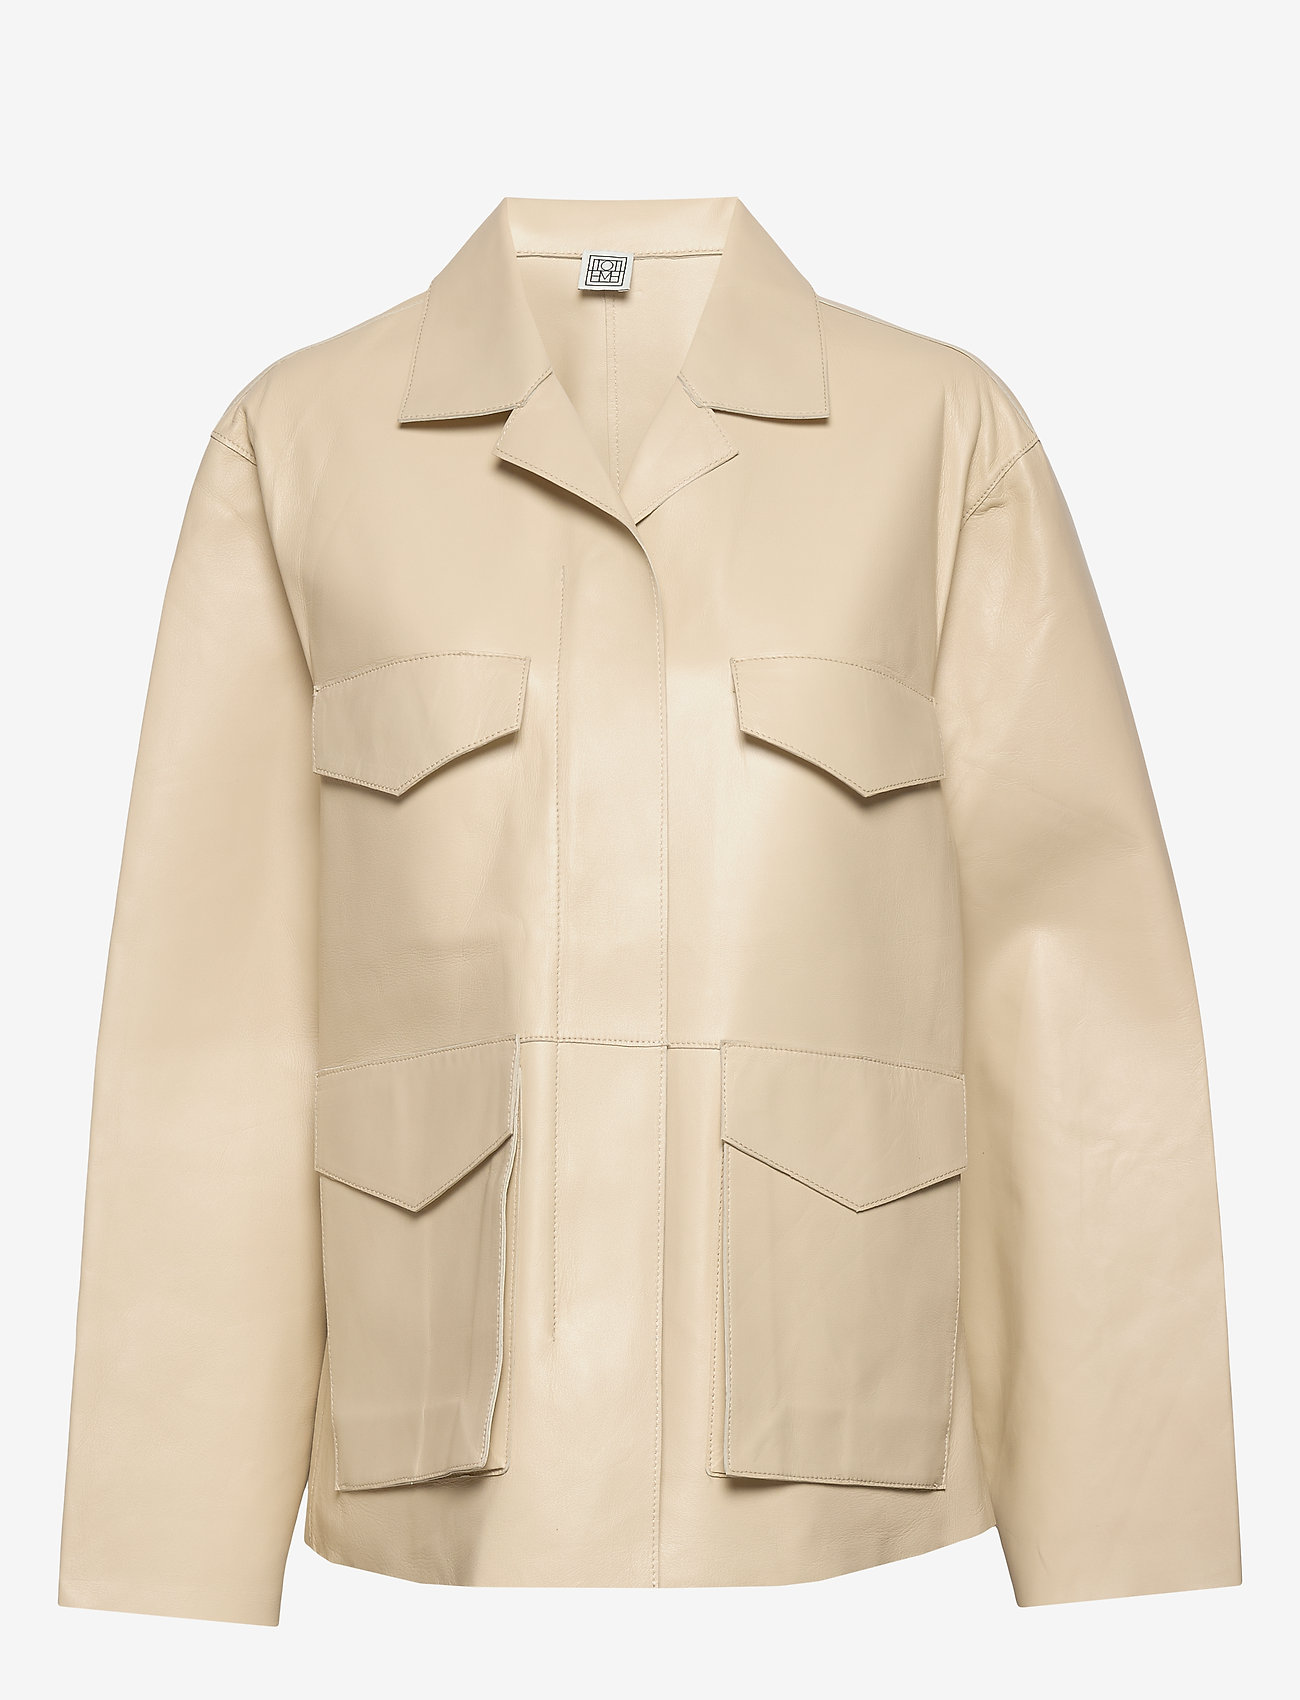 Totême - AVIGNON LEATHER JACKET - nahkatakit - ivory 160 - 0